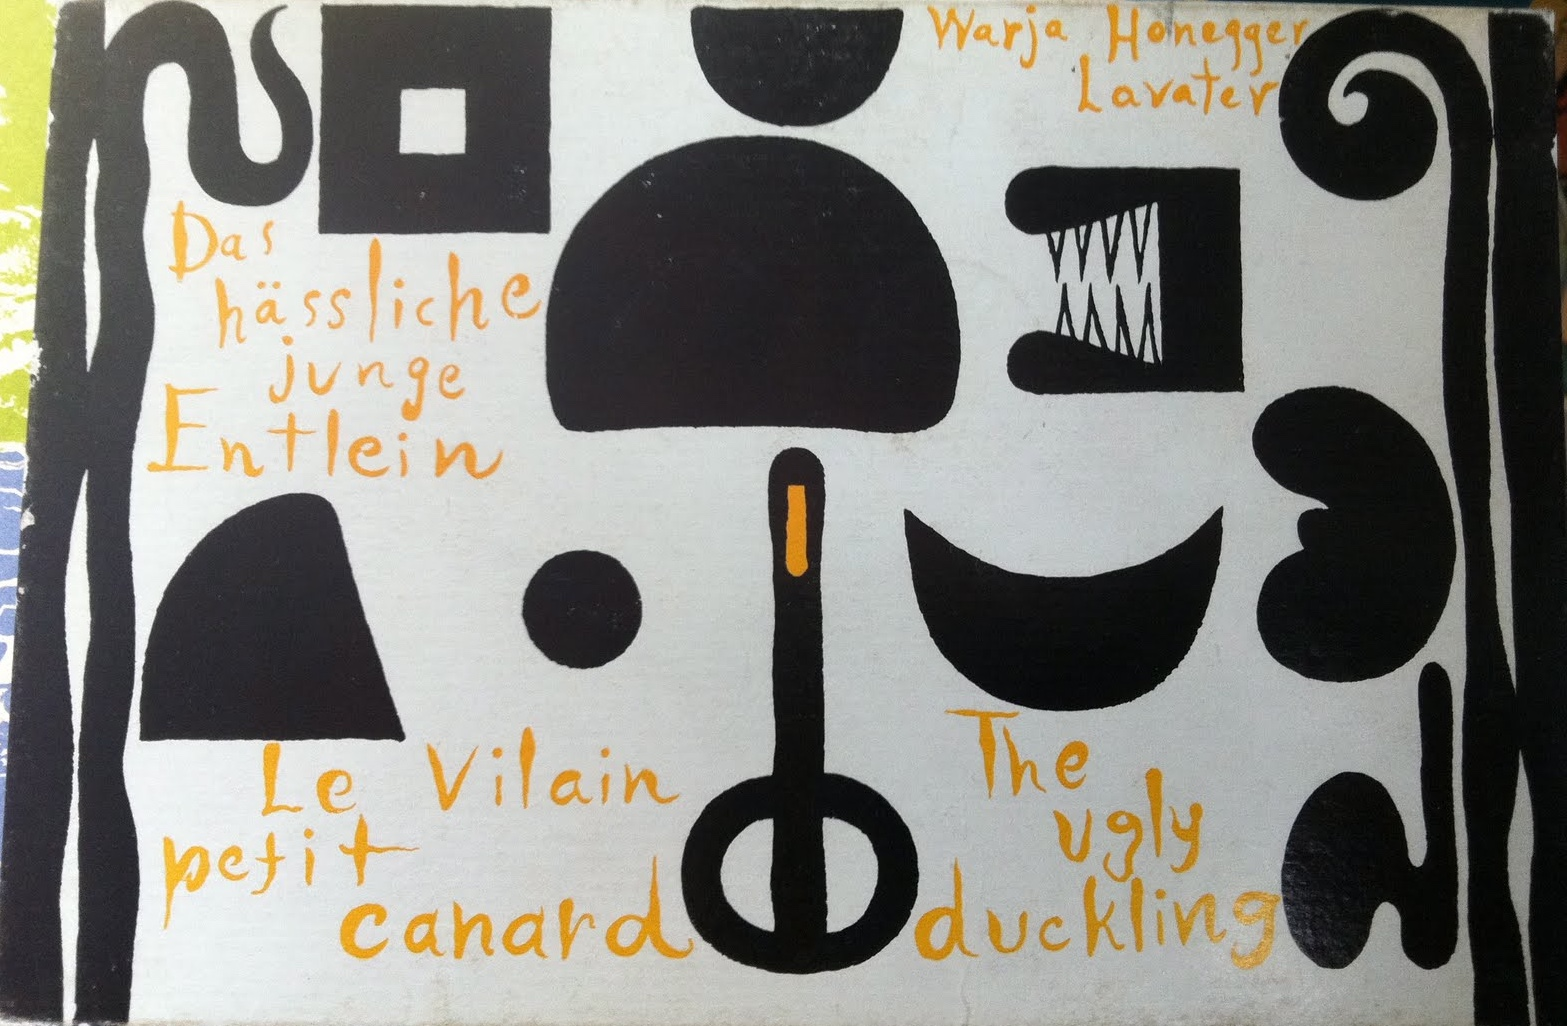 ugly duckling essay The ugly duckling is a classic tale of searching for one's own identity as an alternative to assimilation the cat and the hen tell him that if he wants to be taken .